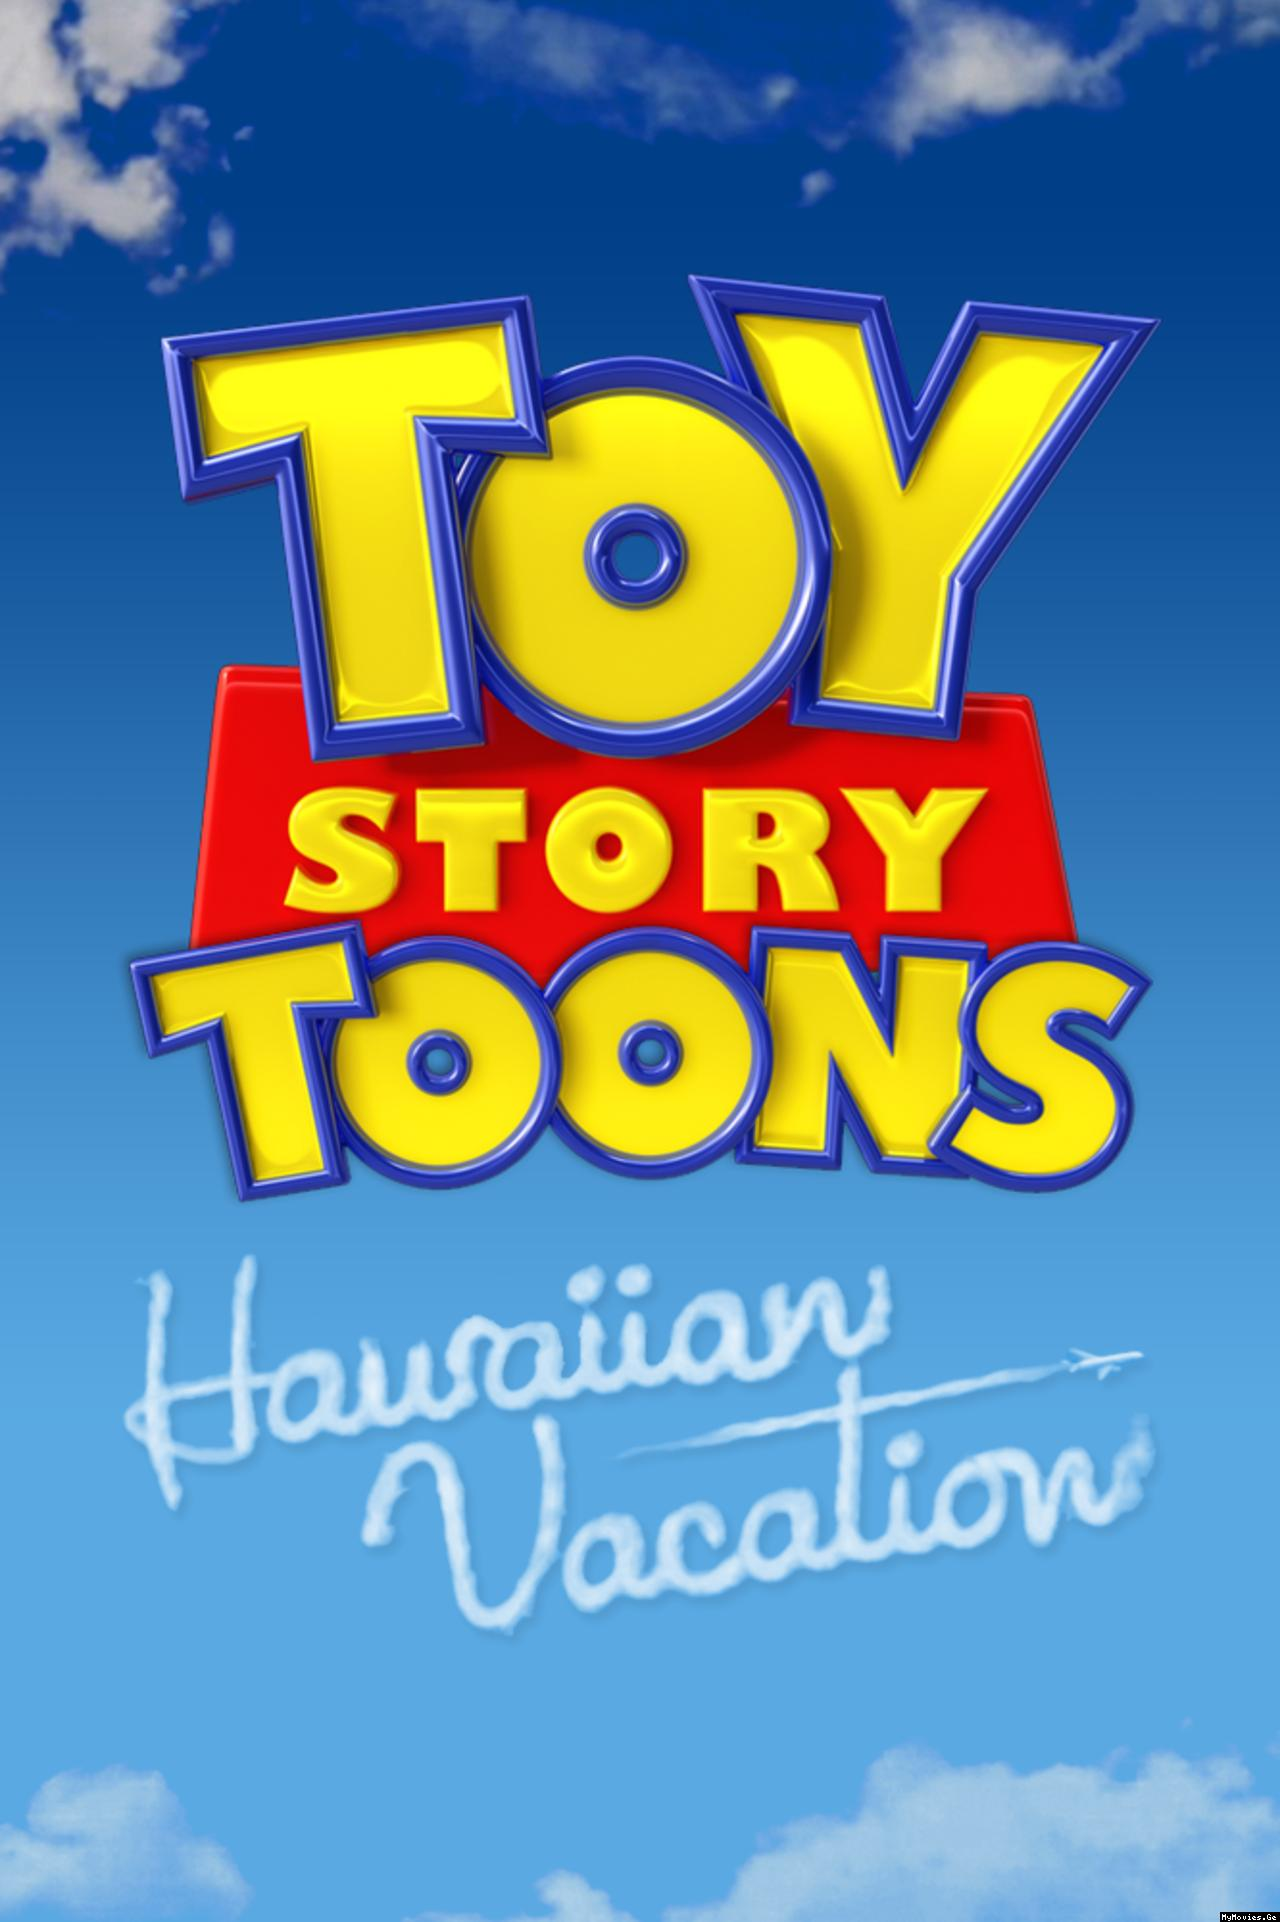 affiche poster toy story toons vacances hawai hawaiian vacation disney pixar